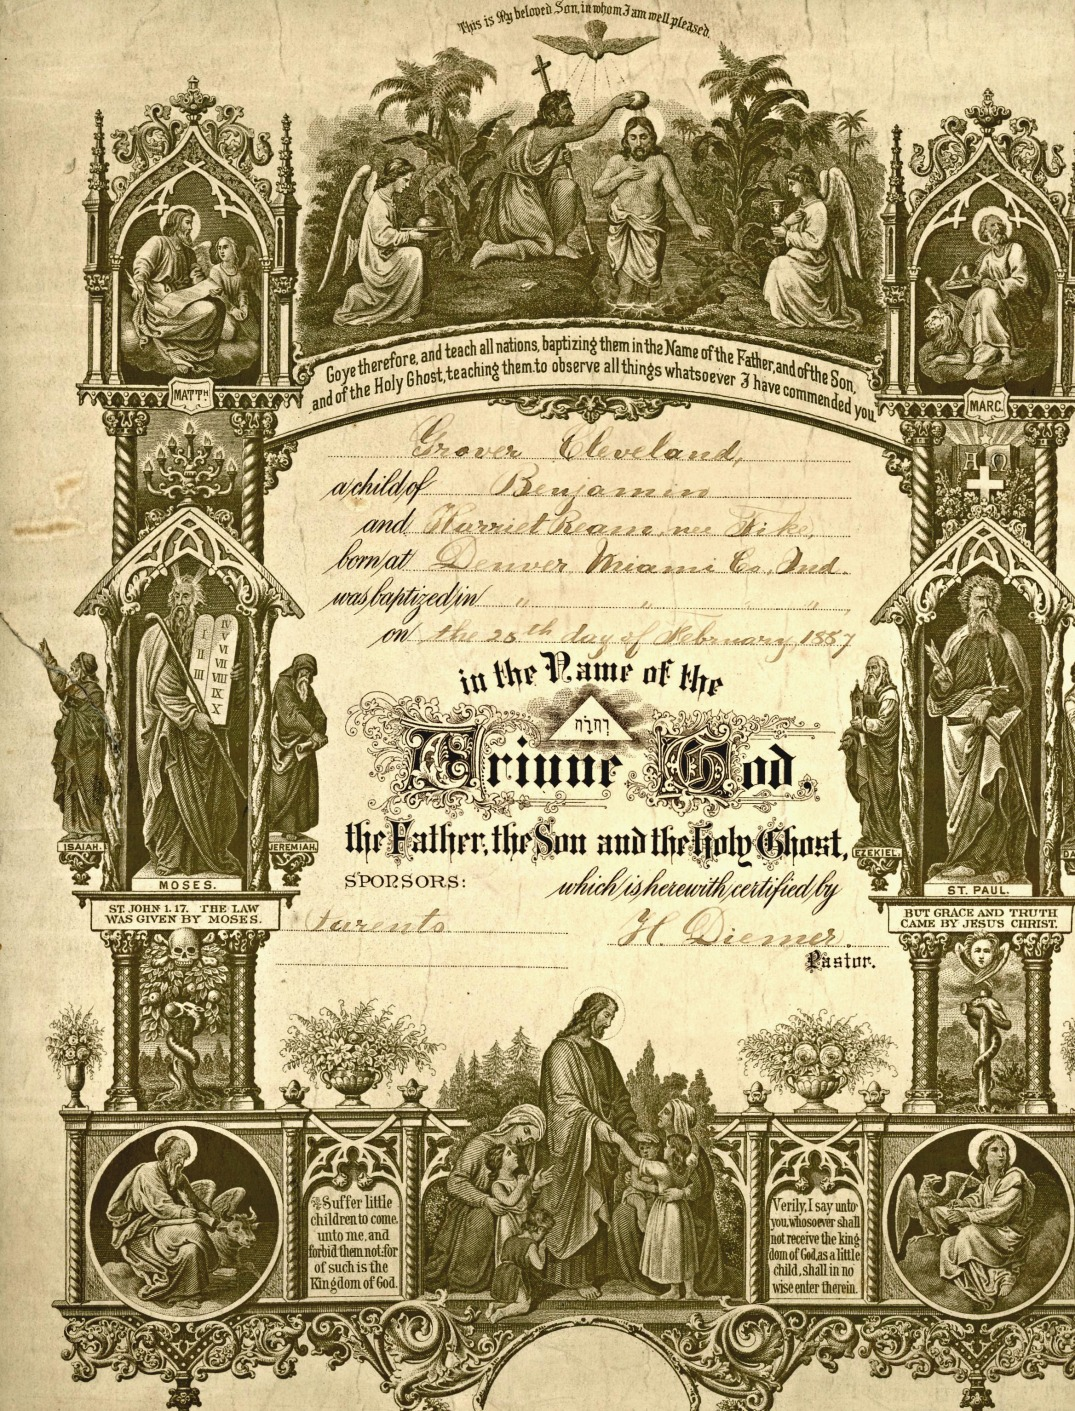 Grover Cleveland Ream baptism certificate.jpg